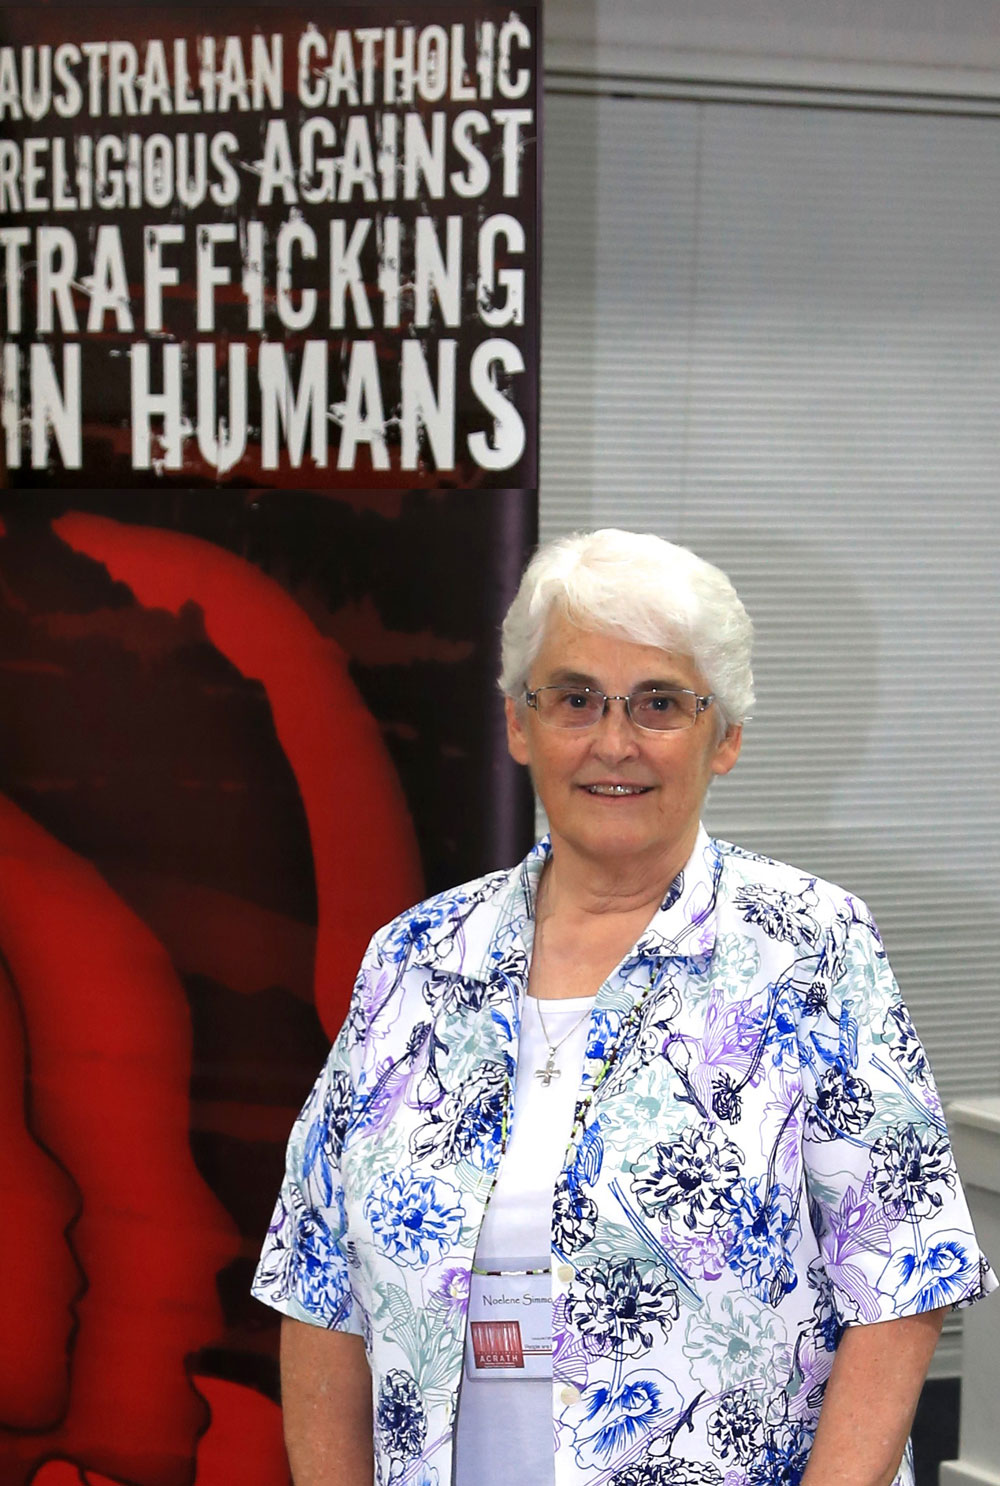 0219 JPICBLOG Noelene Simmons at launch of Catholic Social Justice Paper on Human Trafficking crp